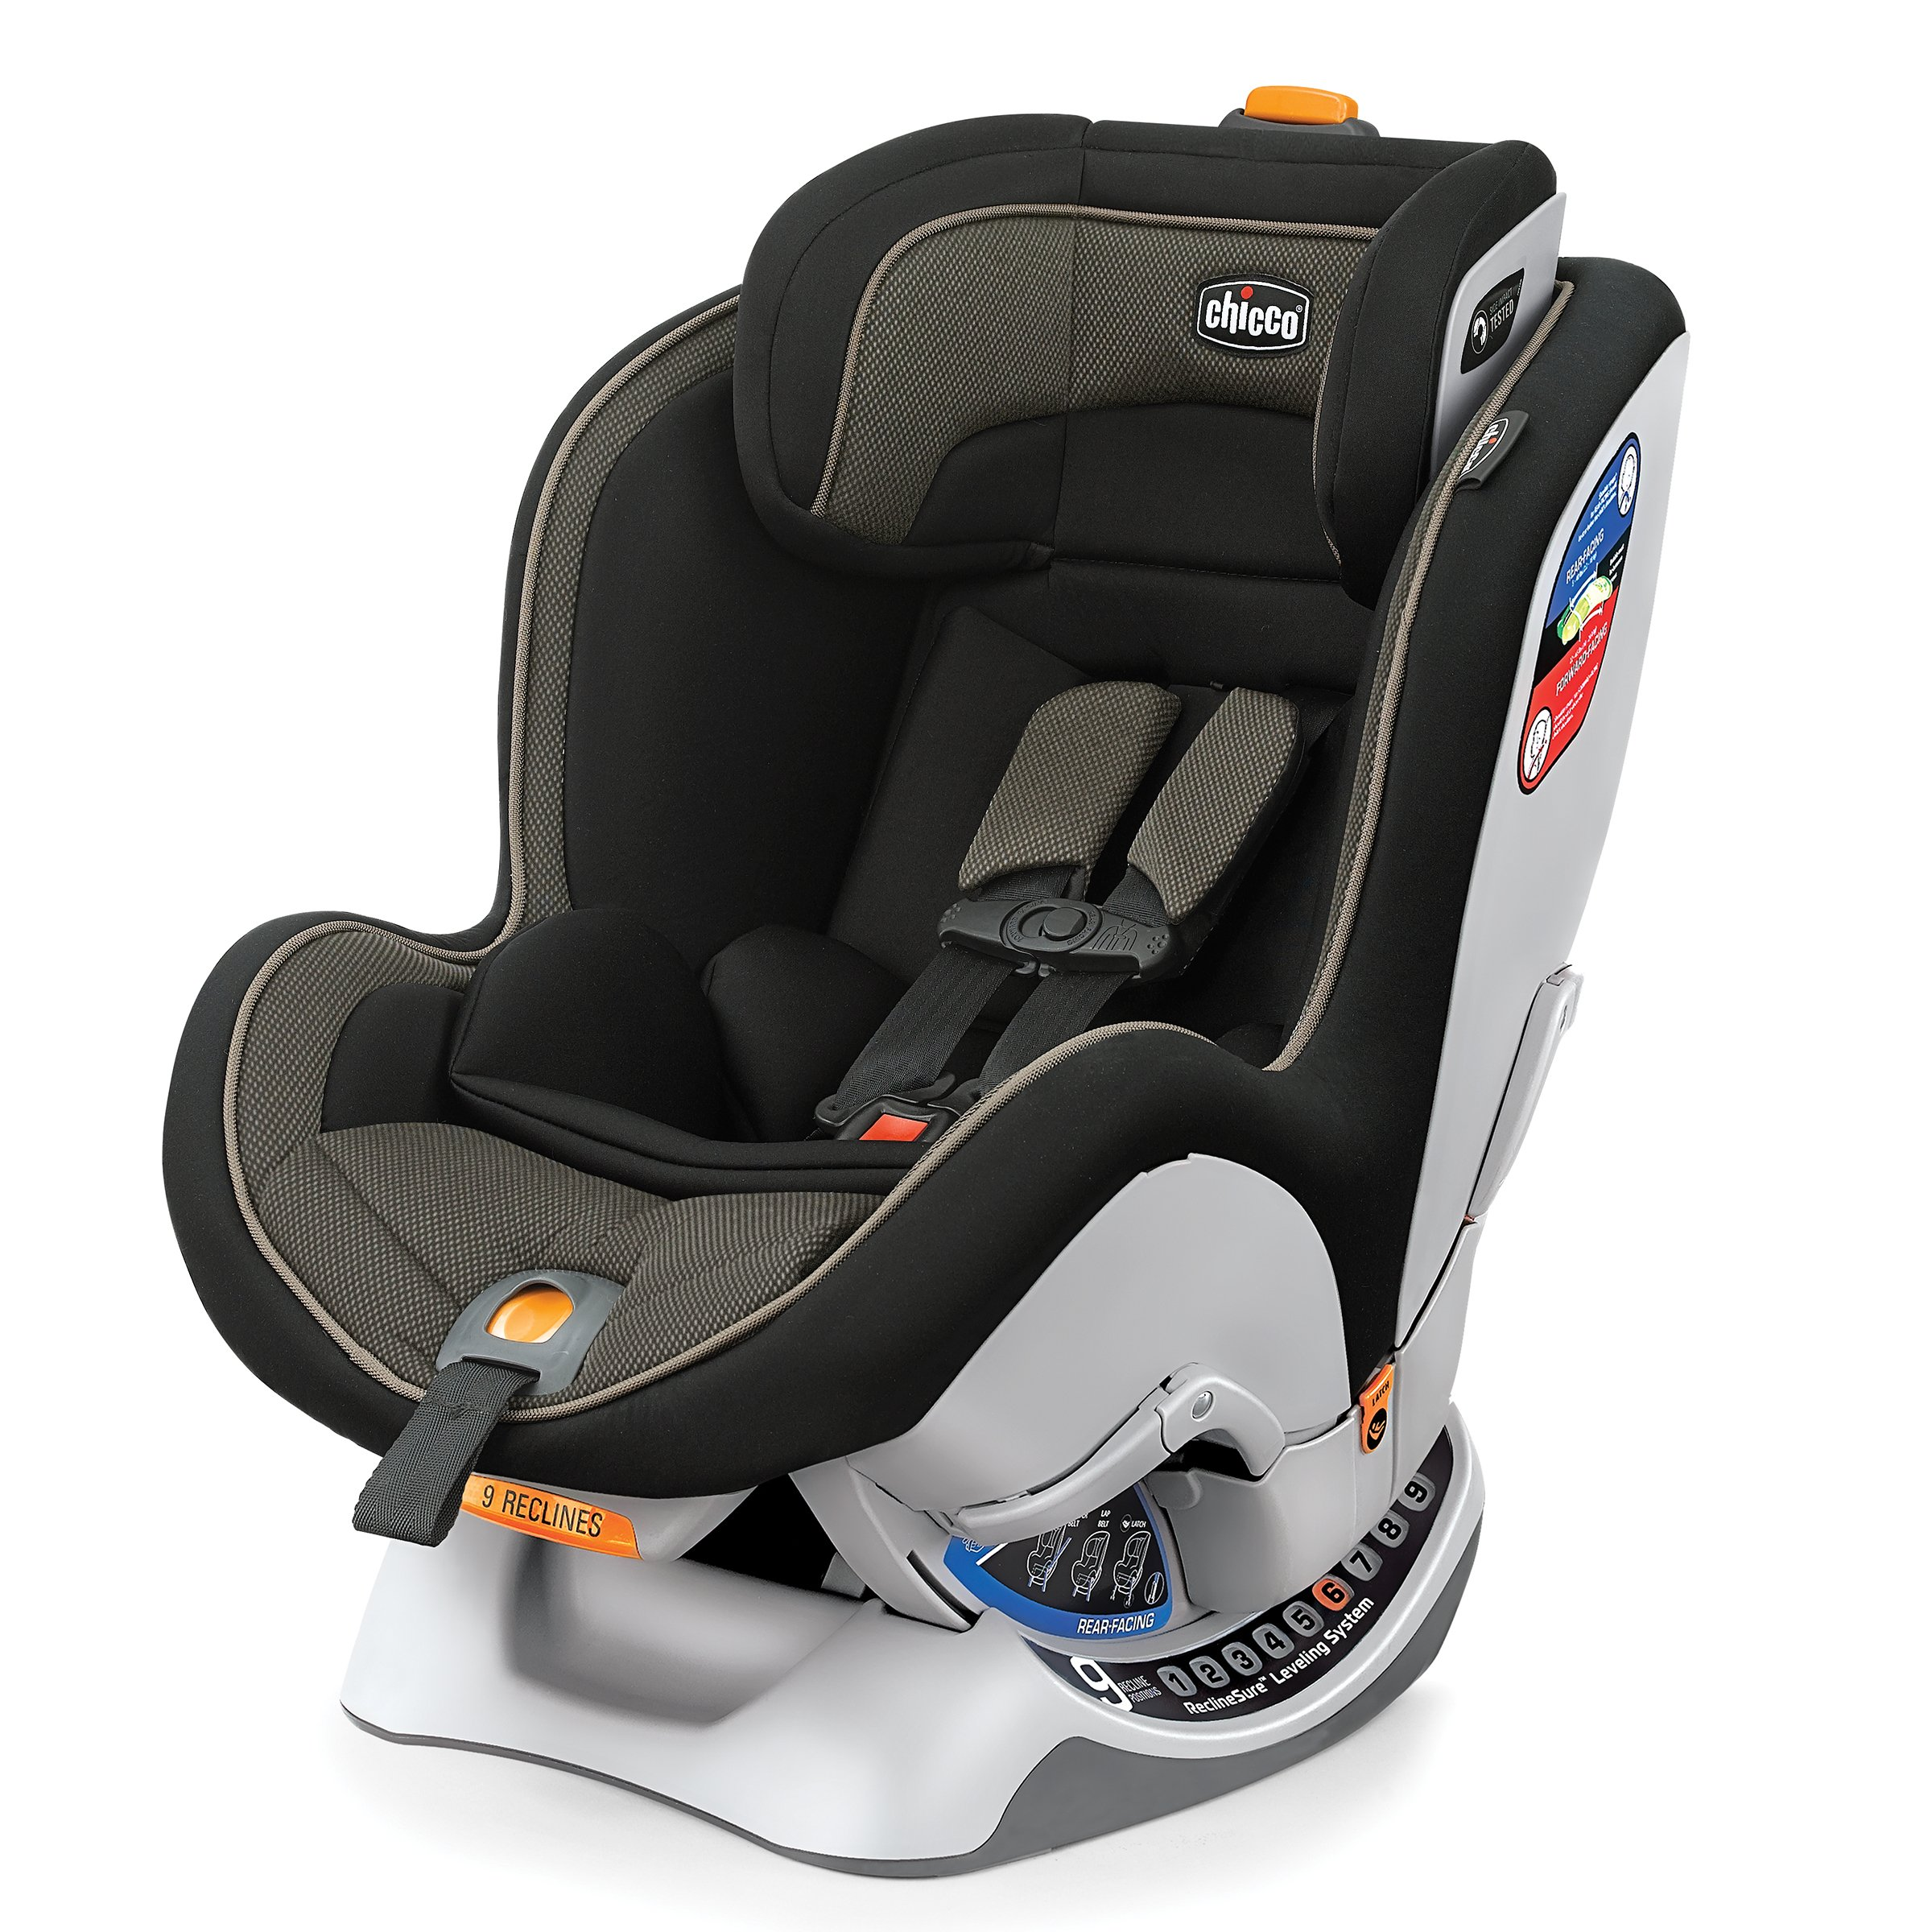 Chicco NextFit Convertible Car Seat, Matrix by Chicco (Image #1)